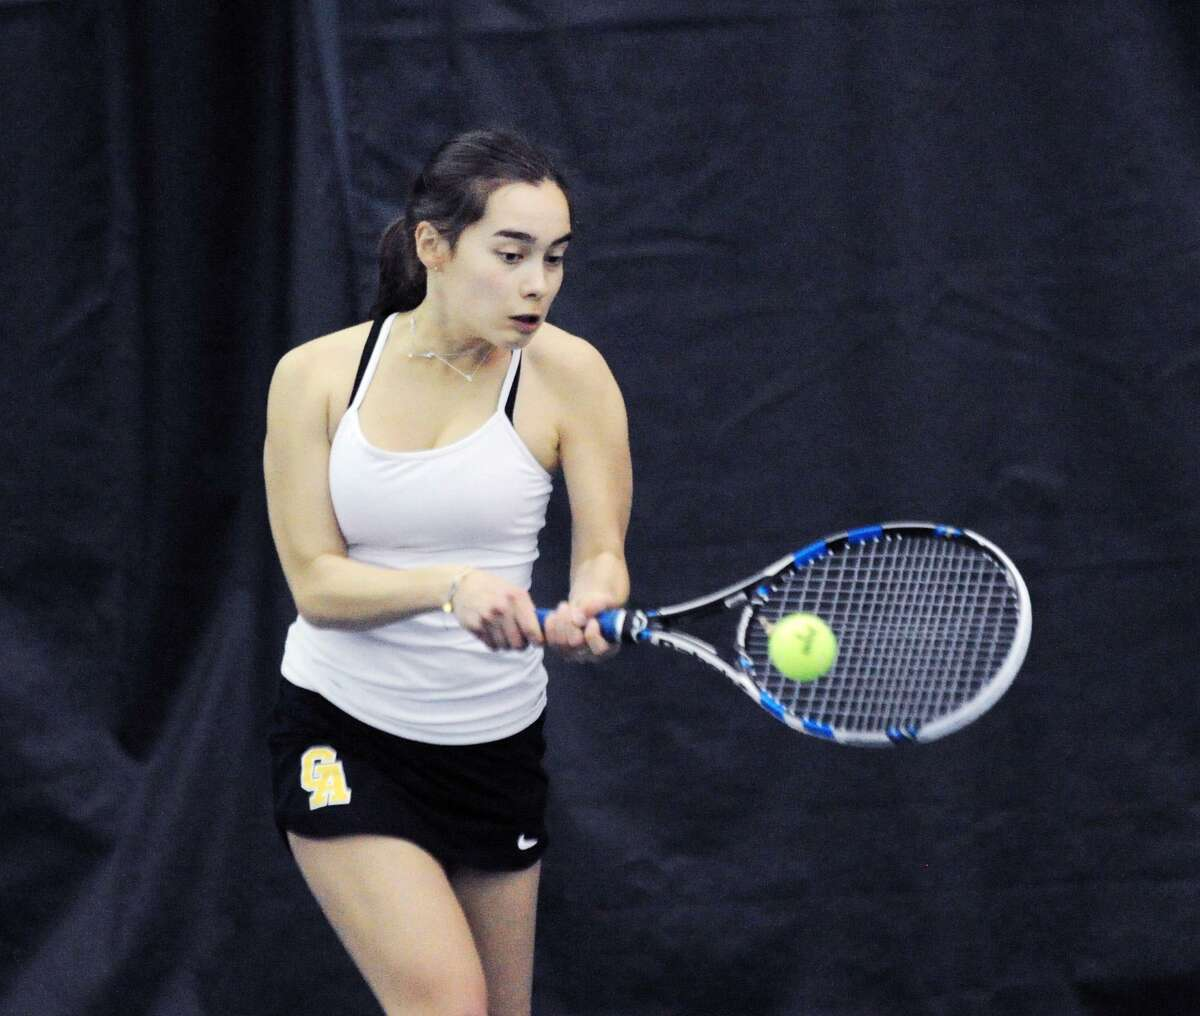 Emma Carney of Greenwich Academy during her match against Grace Coale of Sacred Heart in the girls high shool tennis match between Sacred Heart Greenwich and Greenwich Academy at Sound Shore Indoor Tennis Center in Port Chester, N.Y., Friday, April 27, 2018.